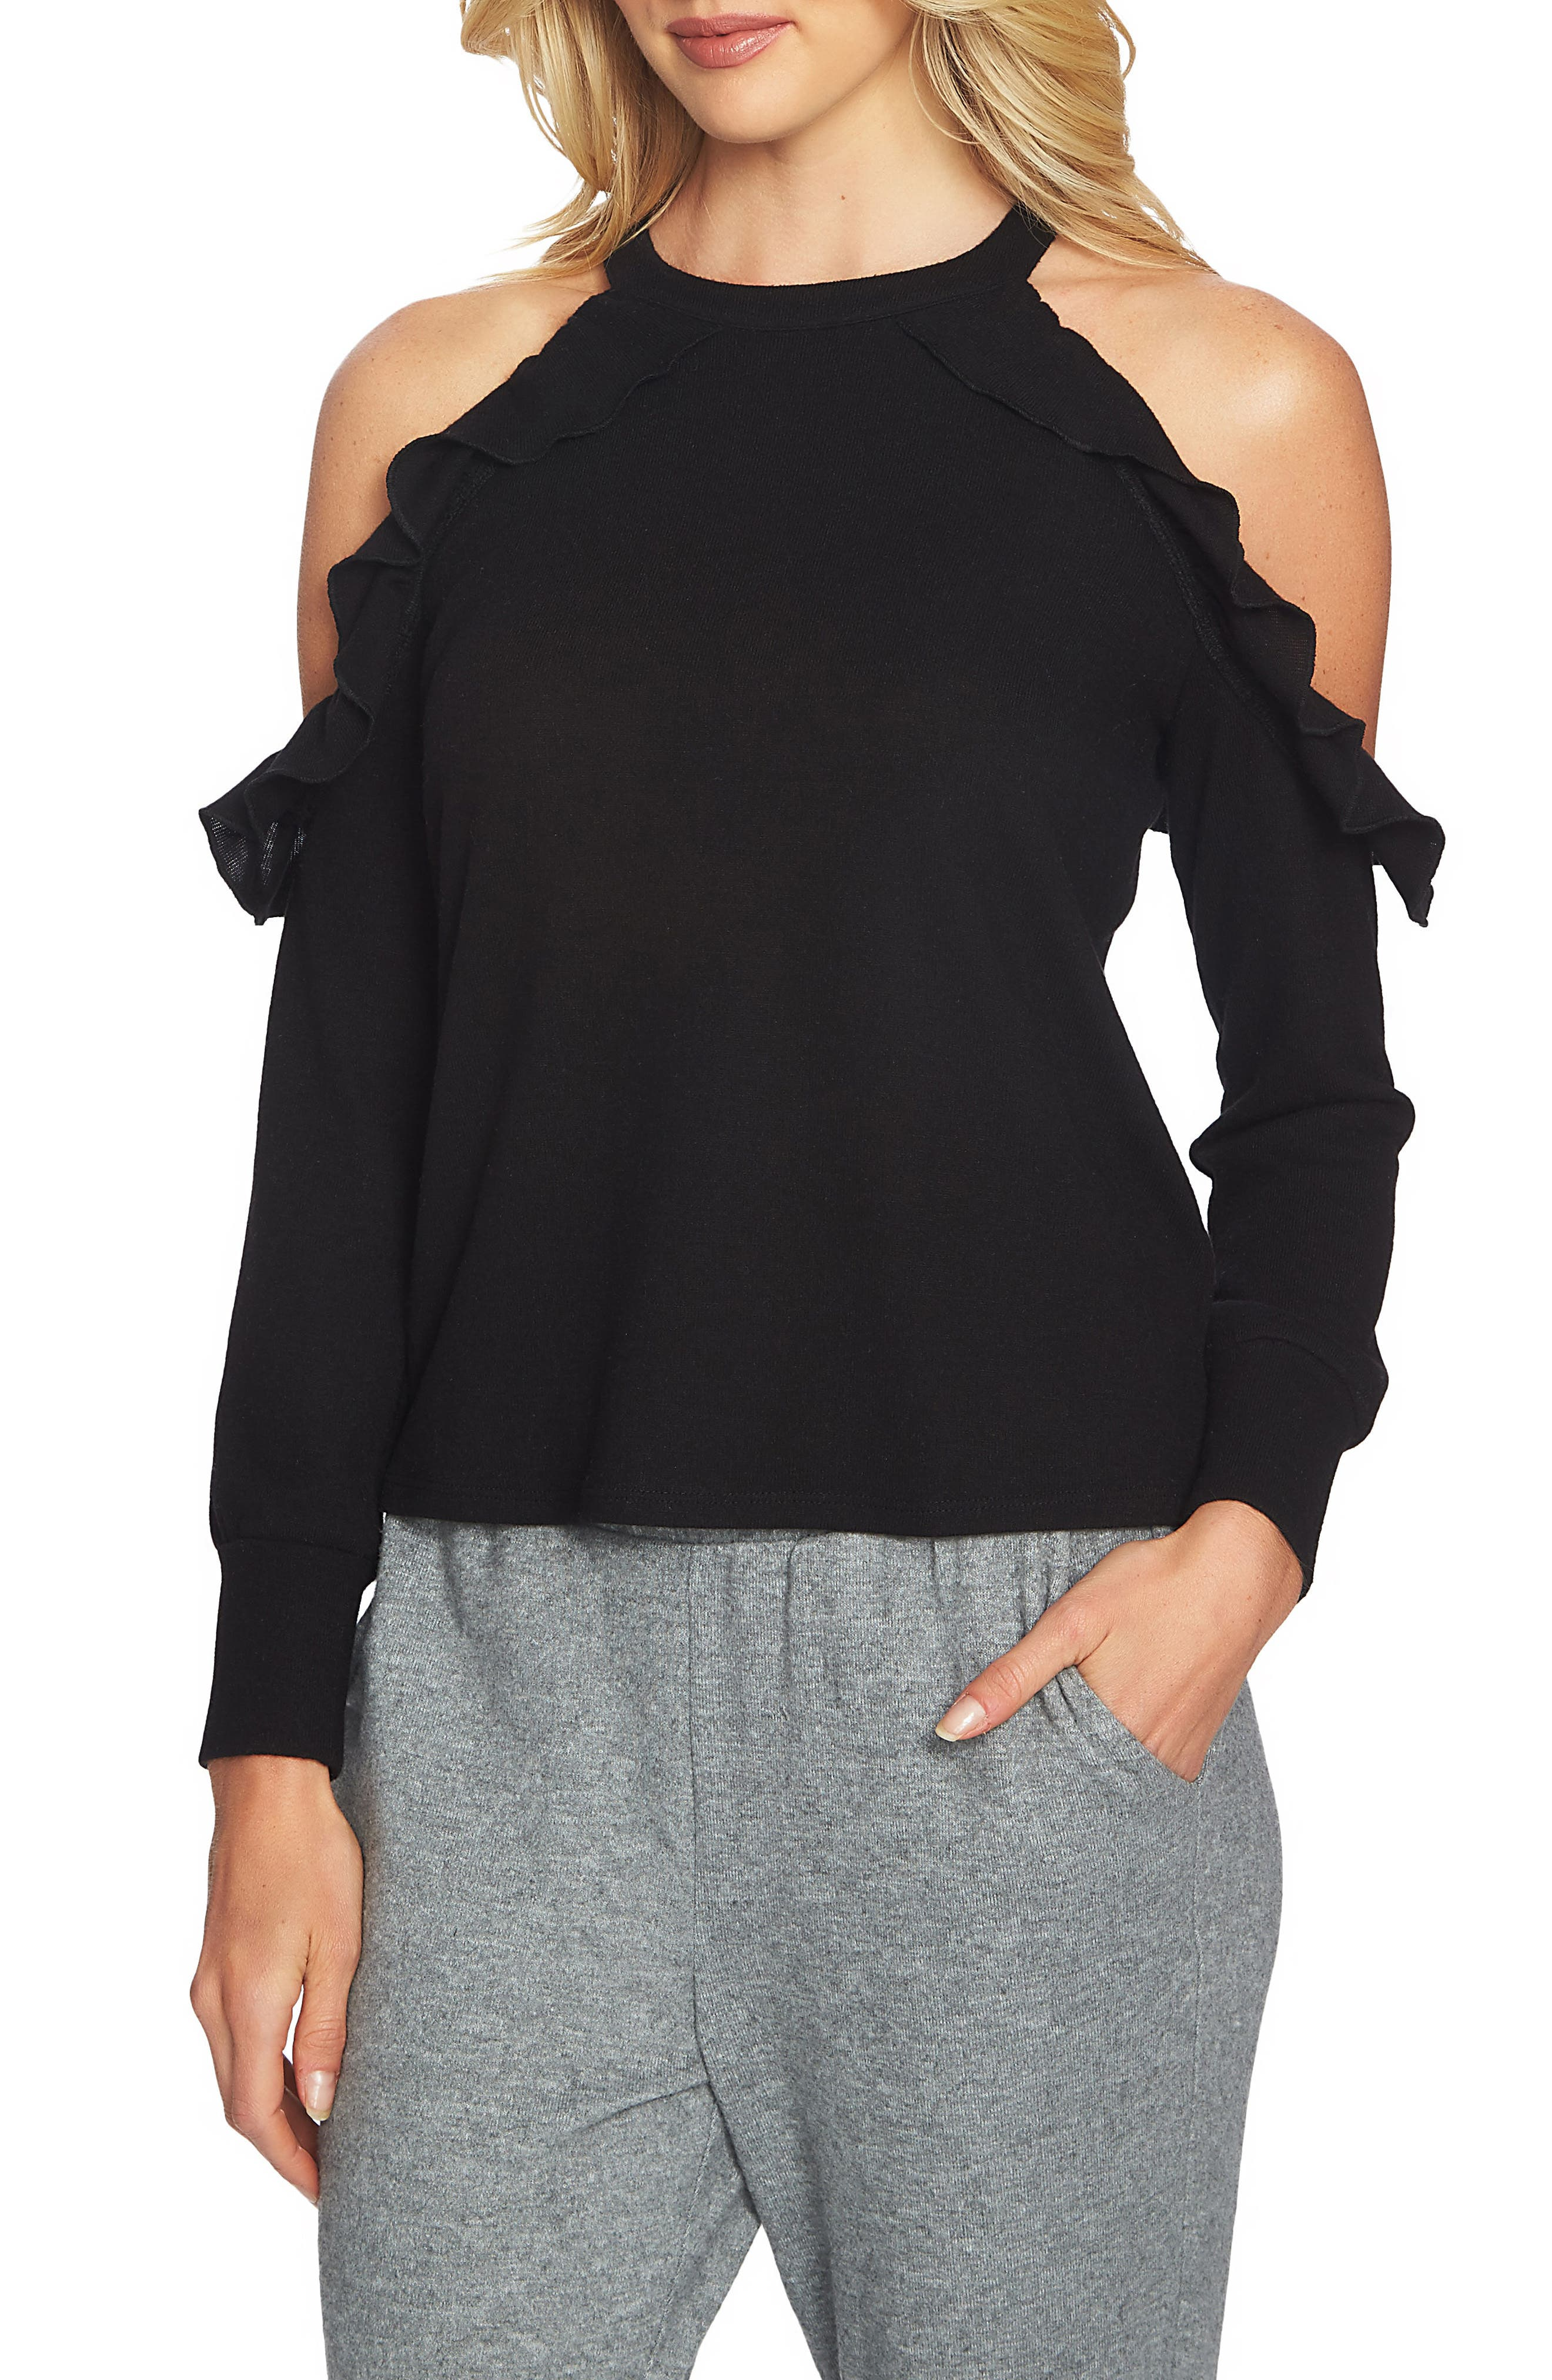 Main Image - 1.STATE The Cozy Cold Shoulder Knit Top